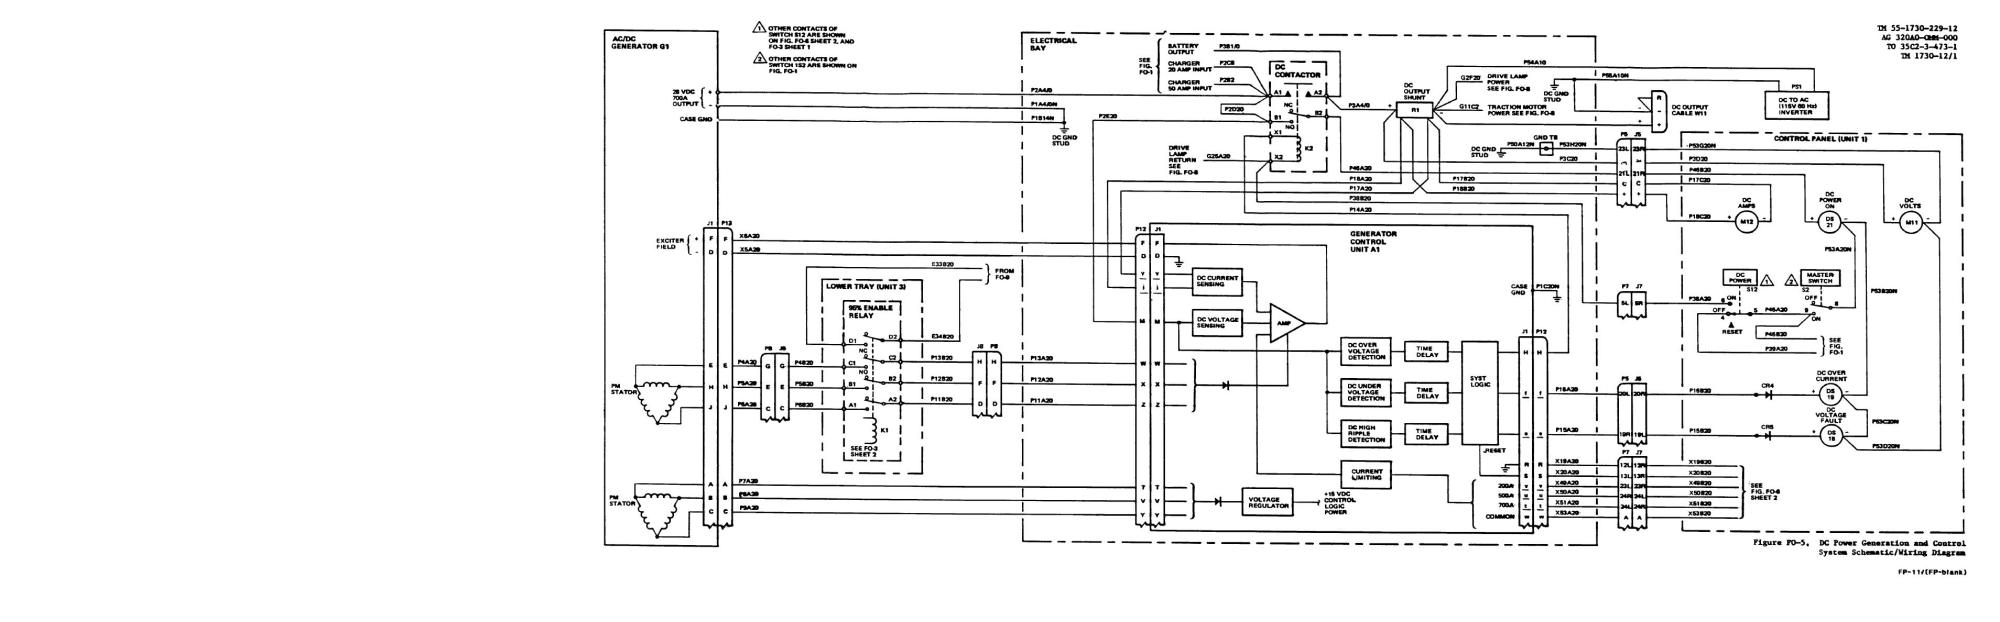 hight resolution of dc power generation and control system schematic wiring diagram